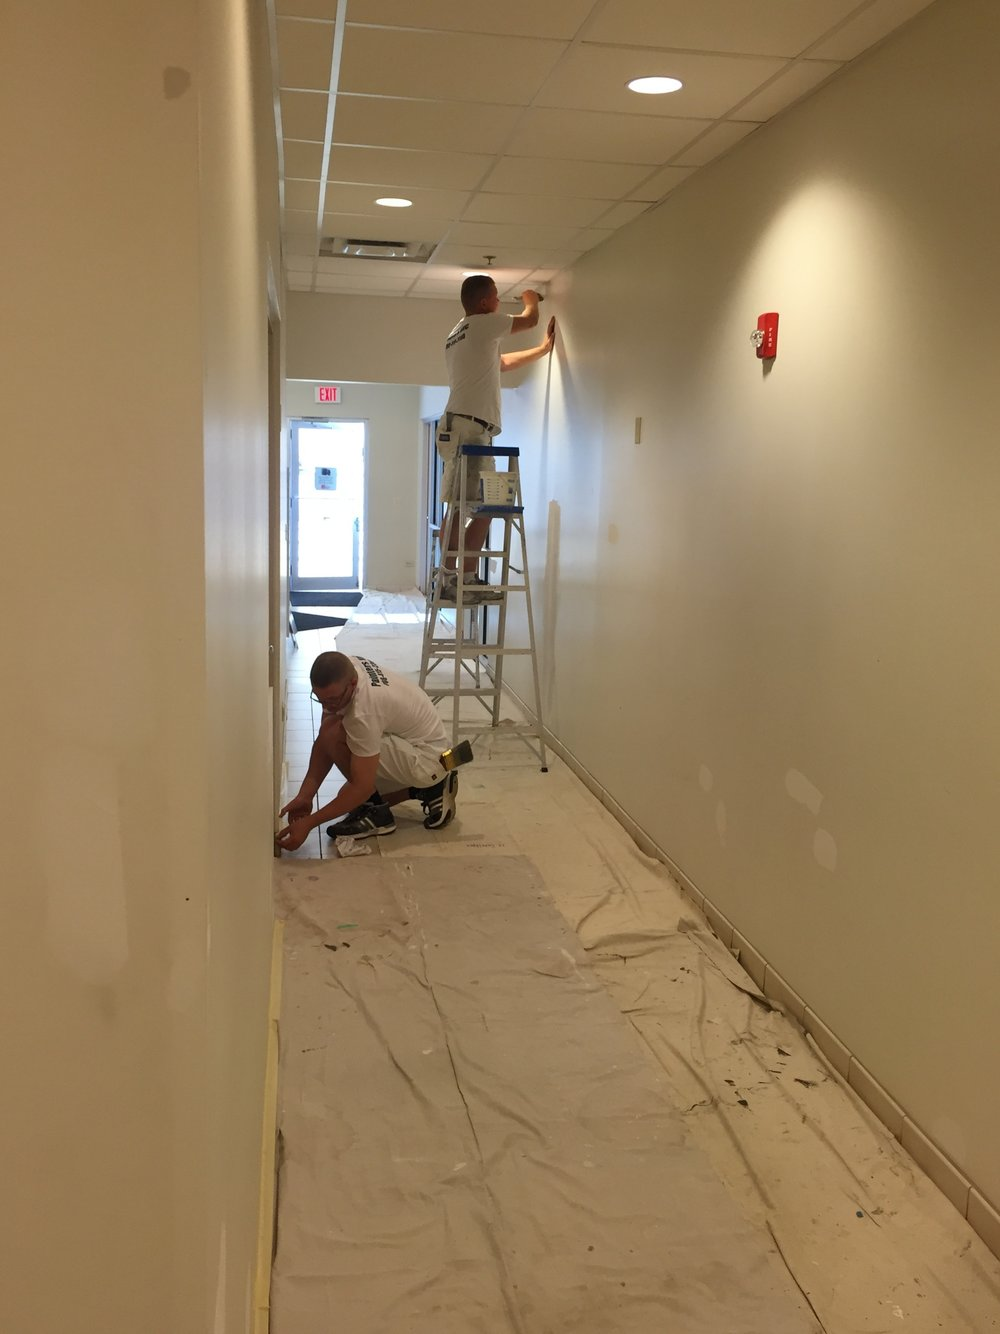 Painters Inc. team painting the interior walls of a Chicagoland healthcare facility